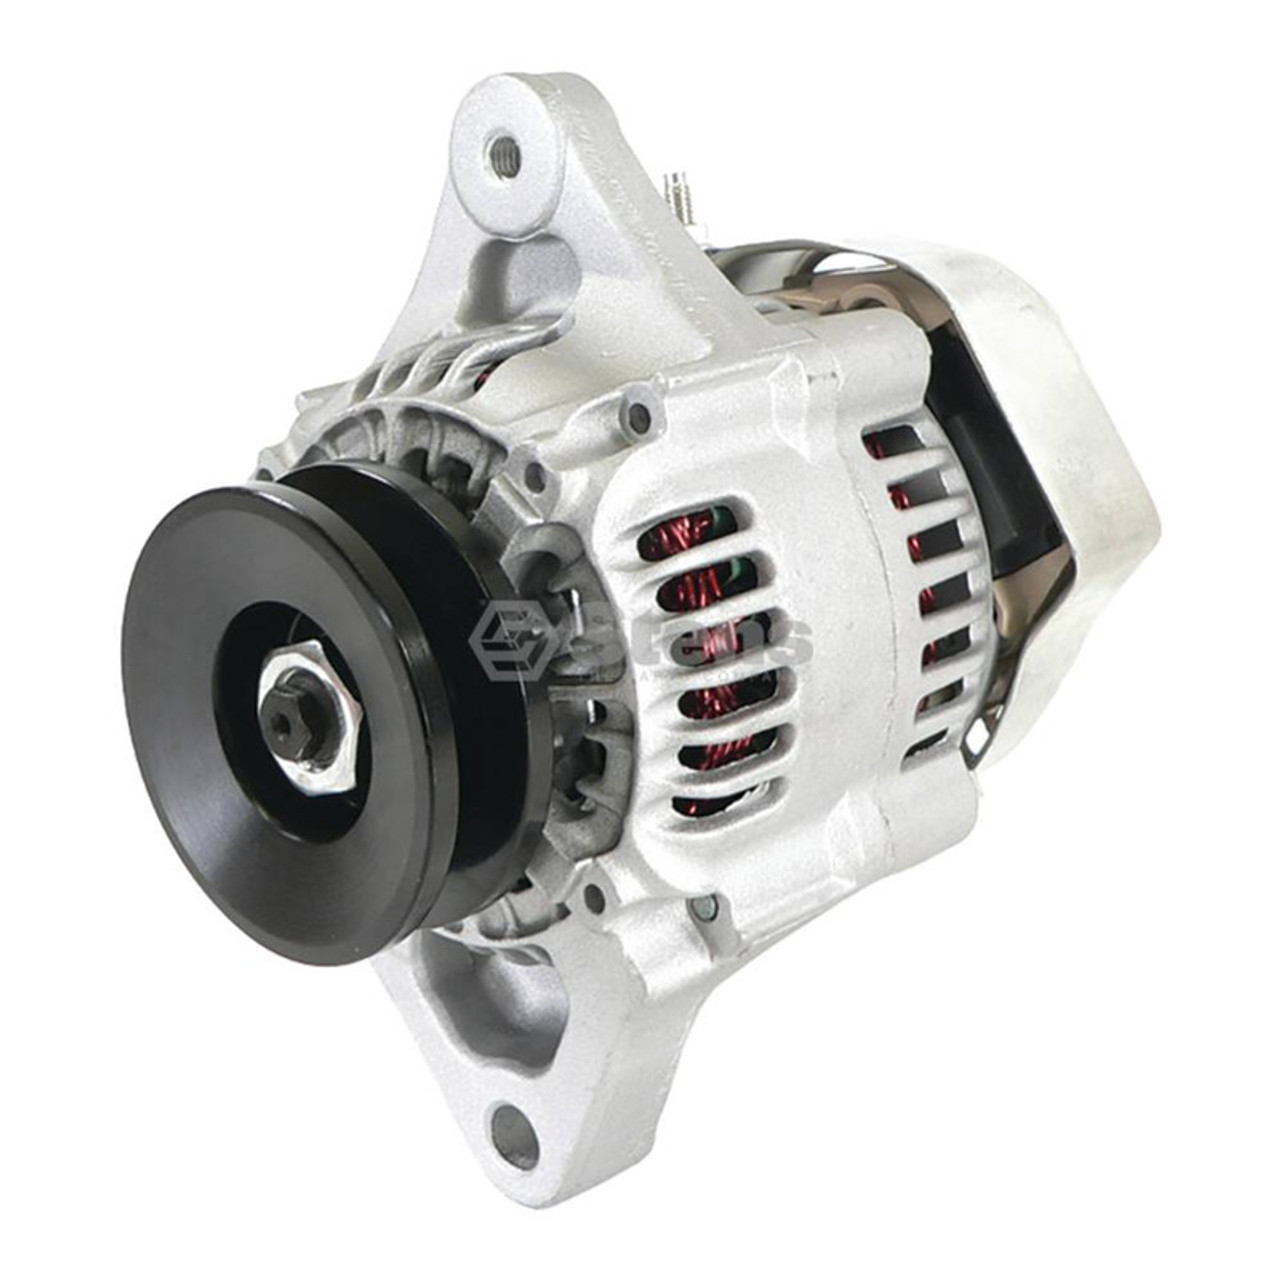 NEW REGULATOR COMPATIBLE WITH NEW HOLLAND VV11962677210 VV12942377200 NIPPONDENSO 100211-4730